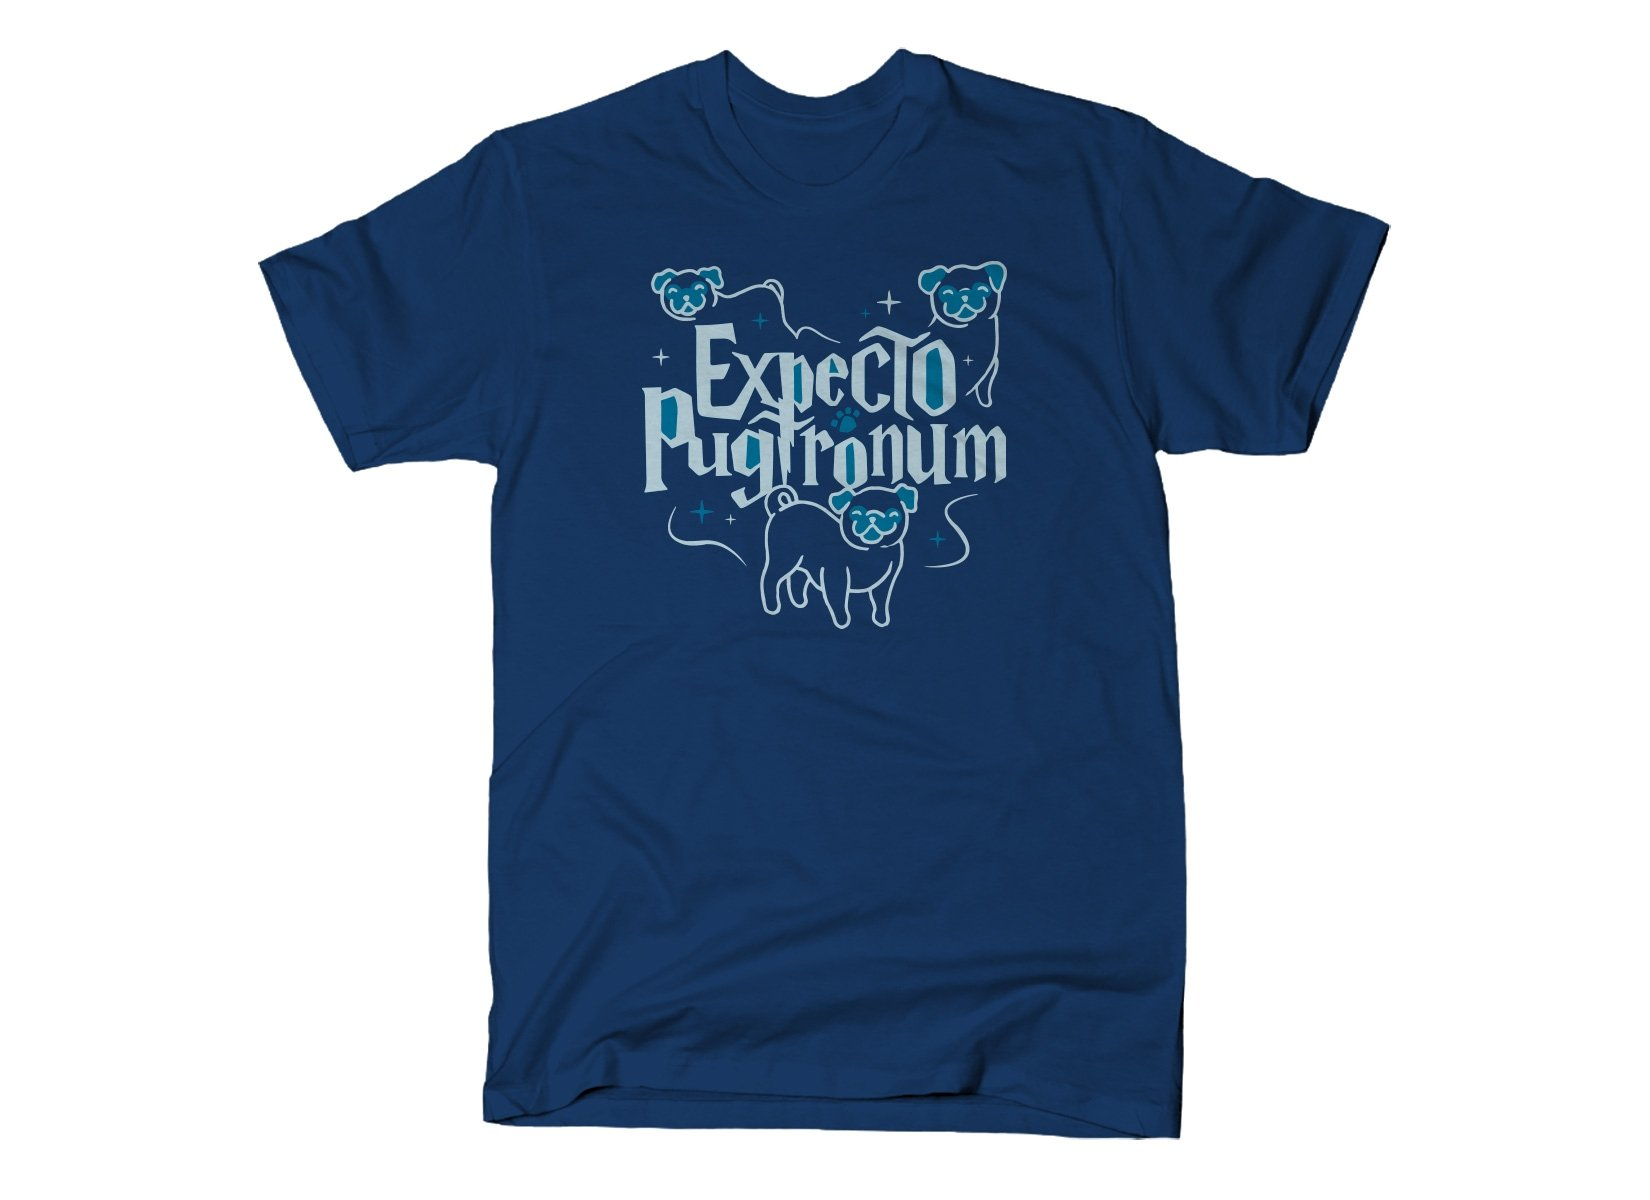 Expecto Pugtronum on Mens T-Shirt